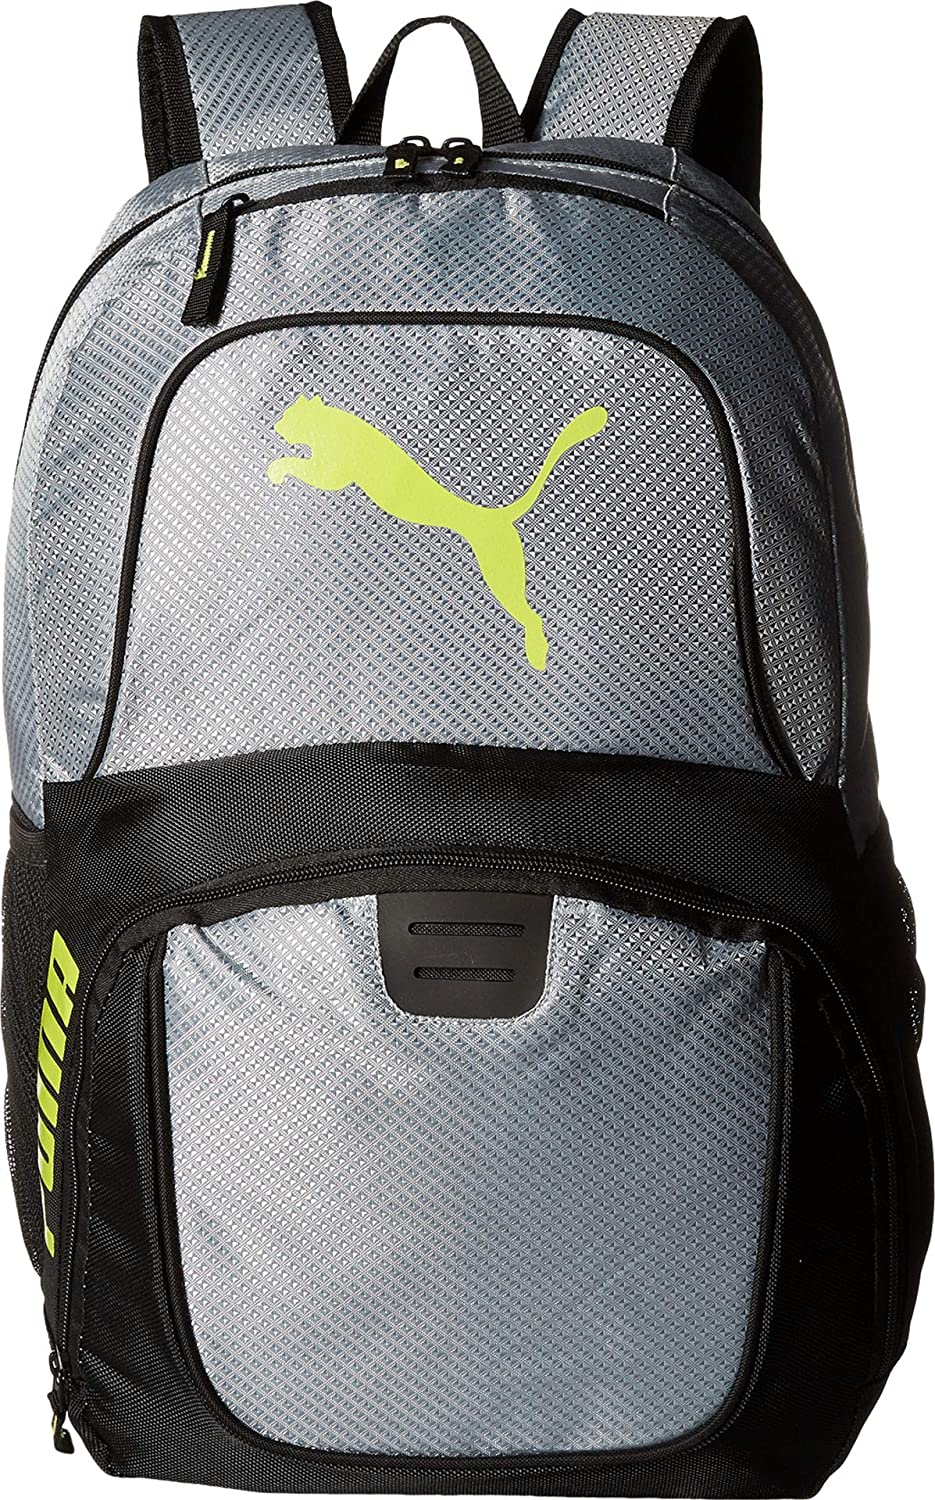 PUMA mens standard Evercat Contender 3.0 Backpack -black/gold One Size PV1673-011